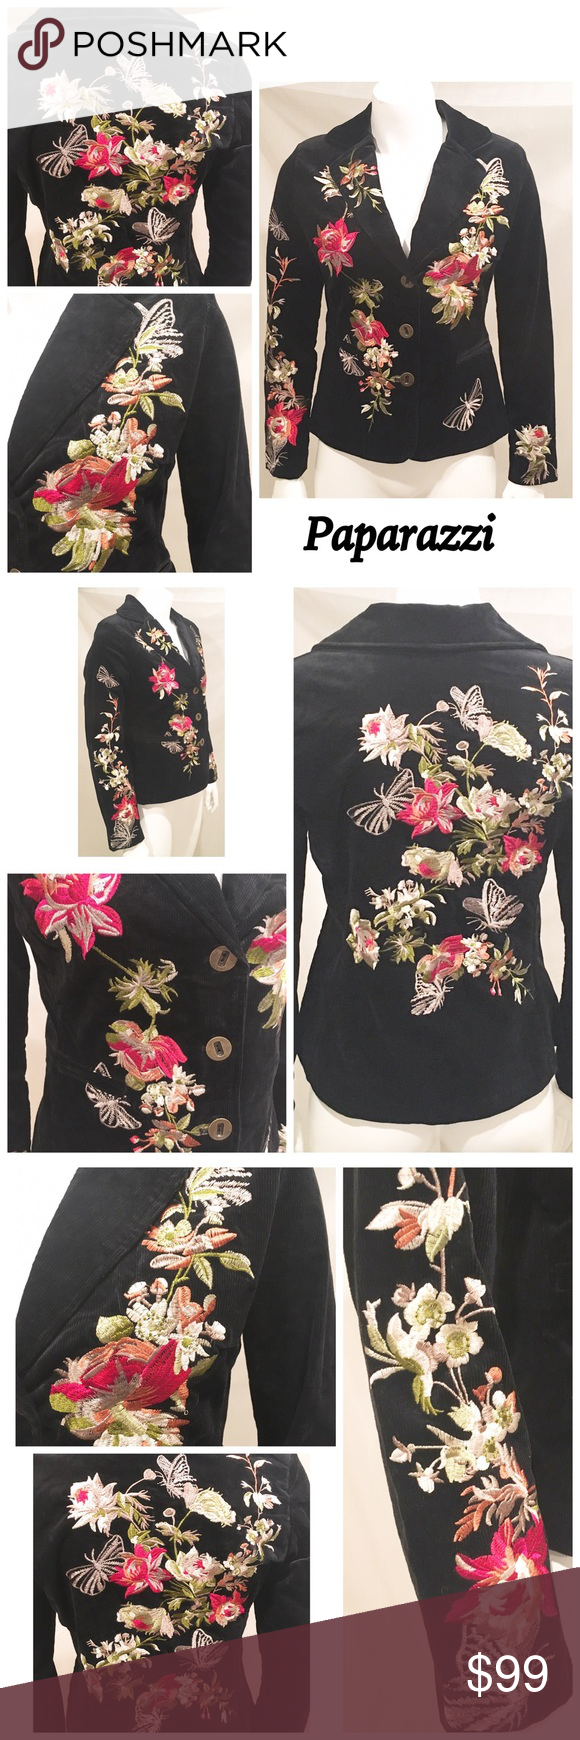 "NWT Paparazzi Corduroy Floral Black Jacket S NWT Paparazzi Corduroy Floral Embroidered Black Button Down Jacket S  Brand new with tags attached   Measurements: Shoulders: 15.5"" (top of shoulder to top of shoulder seam) Bust: 19"" (armpit to armpit) Sleeve: 23.75"" (from top shoulder seam to bottom of sleeve) Length: 24.5"" (down the middle- top back collar to bottom of back) Paparazzi Jackets & Coats"